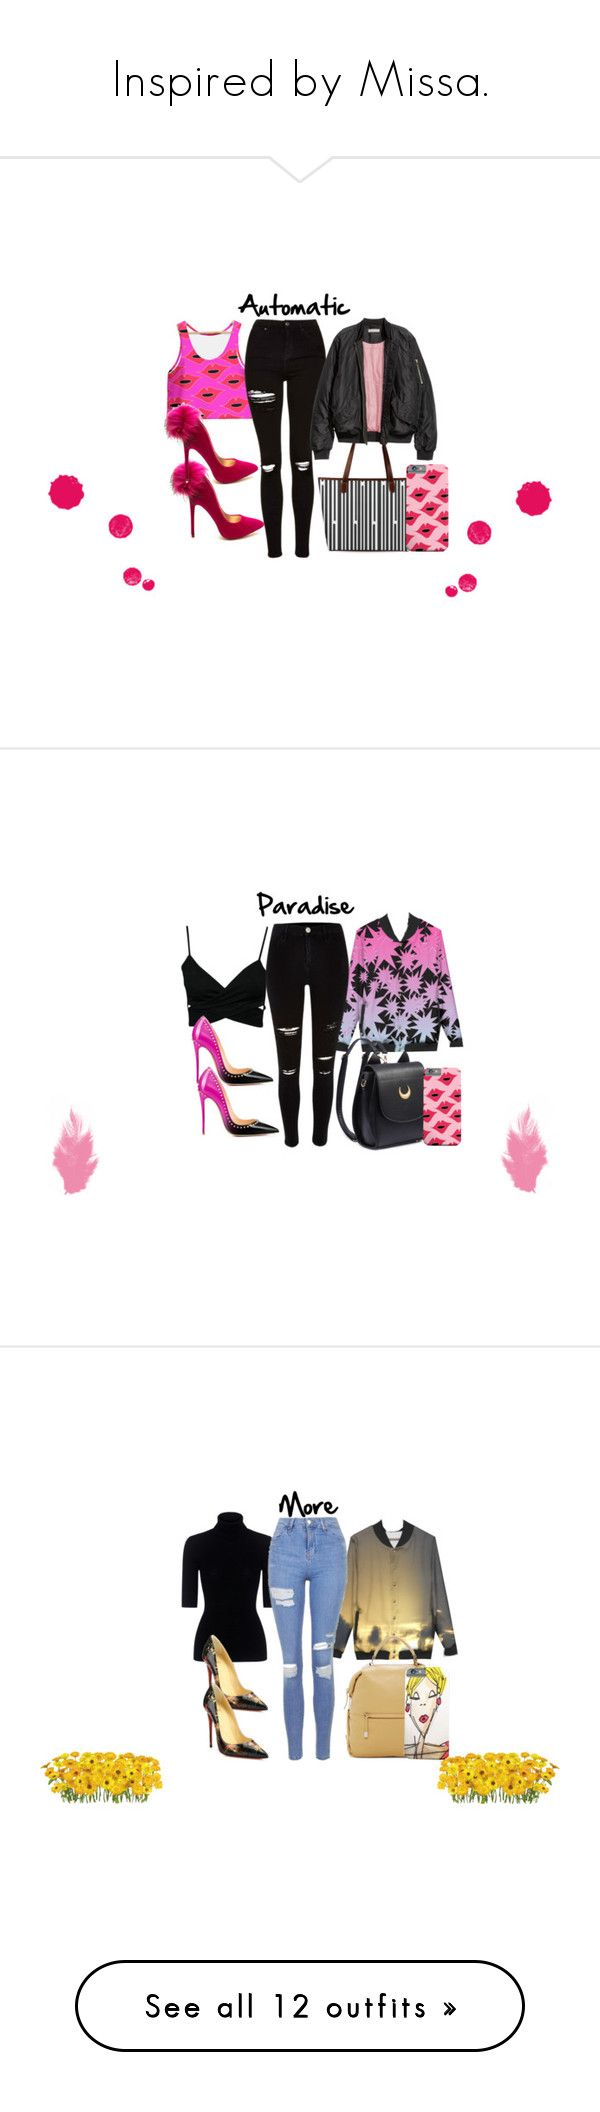 """Inspired by Missa."" by bexijem ❤ liked on Polyvore featuring Topshop, H&M, StreetStyle, casualoutfit, CasualChic, aesthetic, River Island, Theory, Christian Louboutin and Vince Camuto"